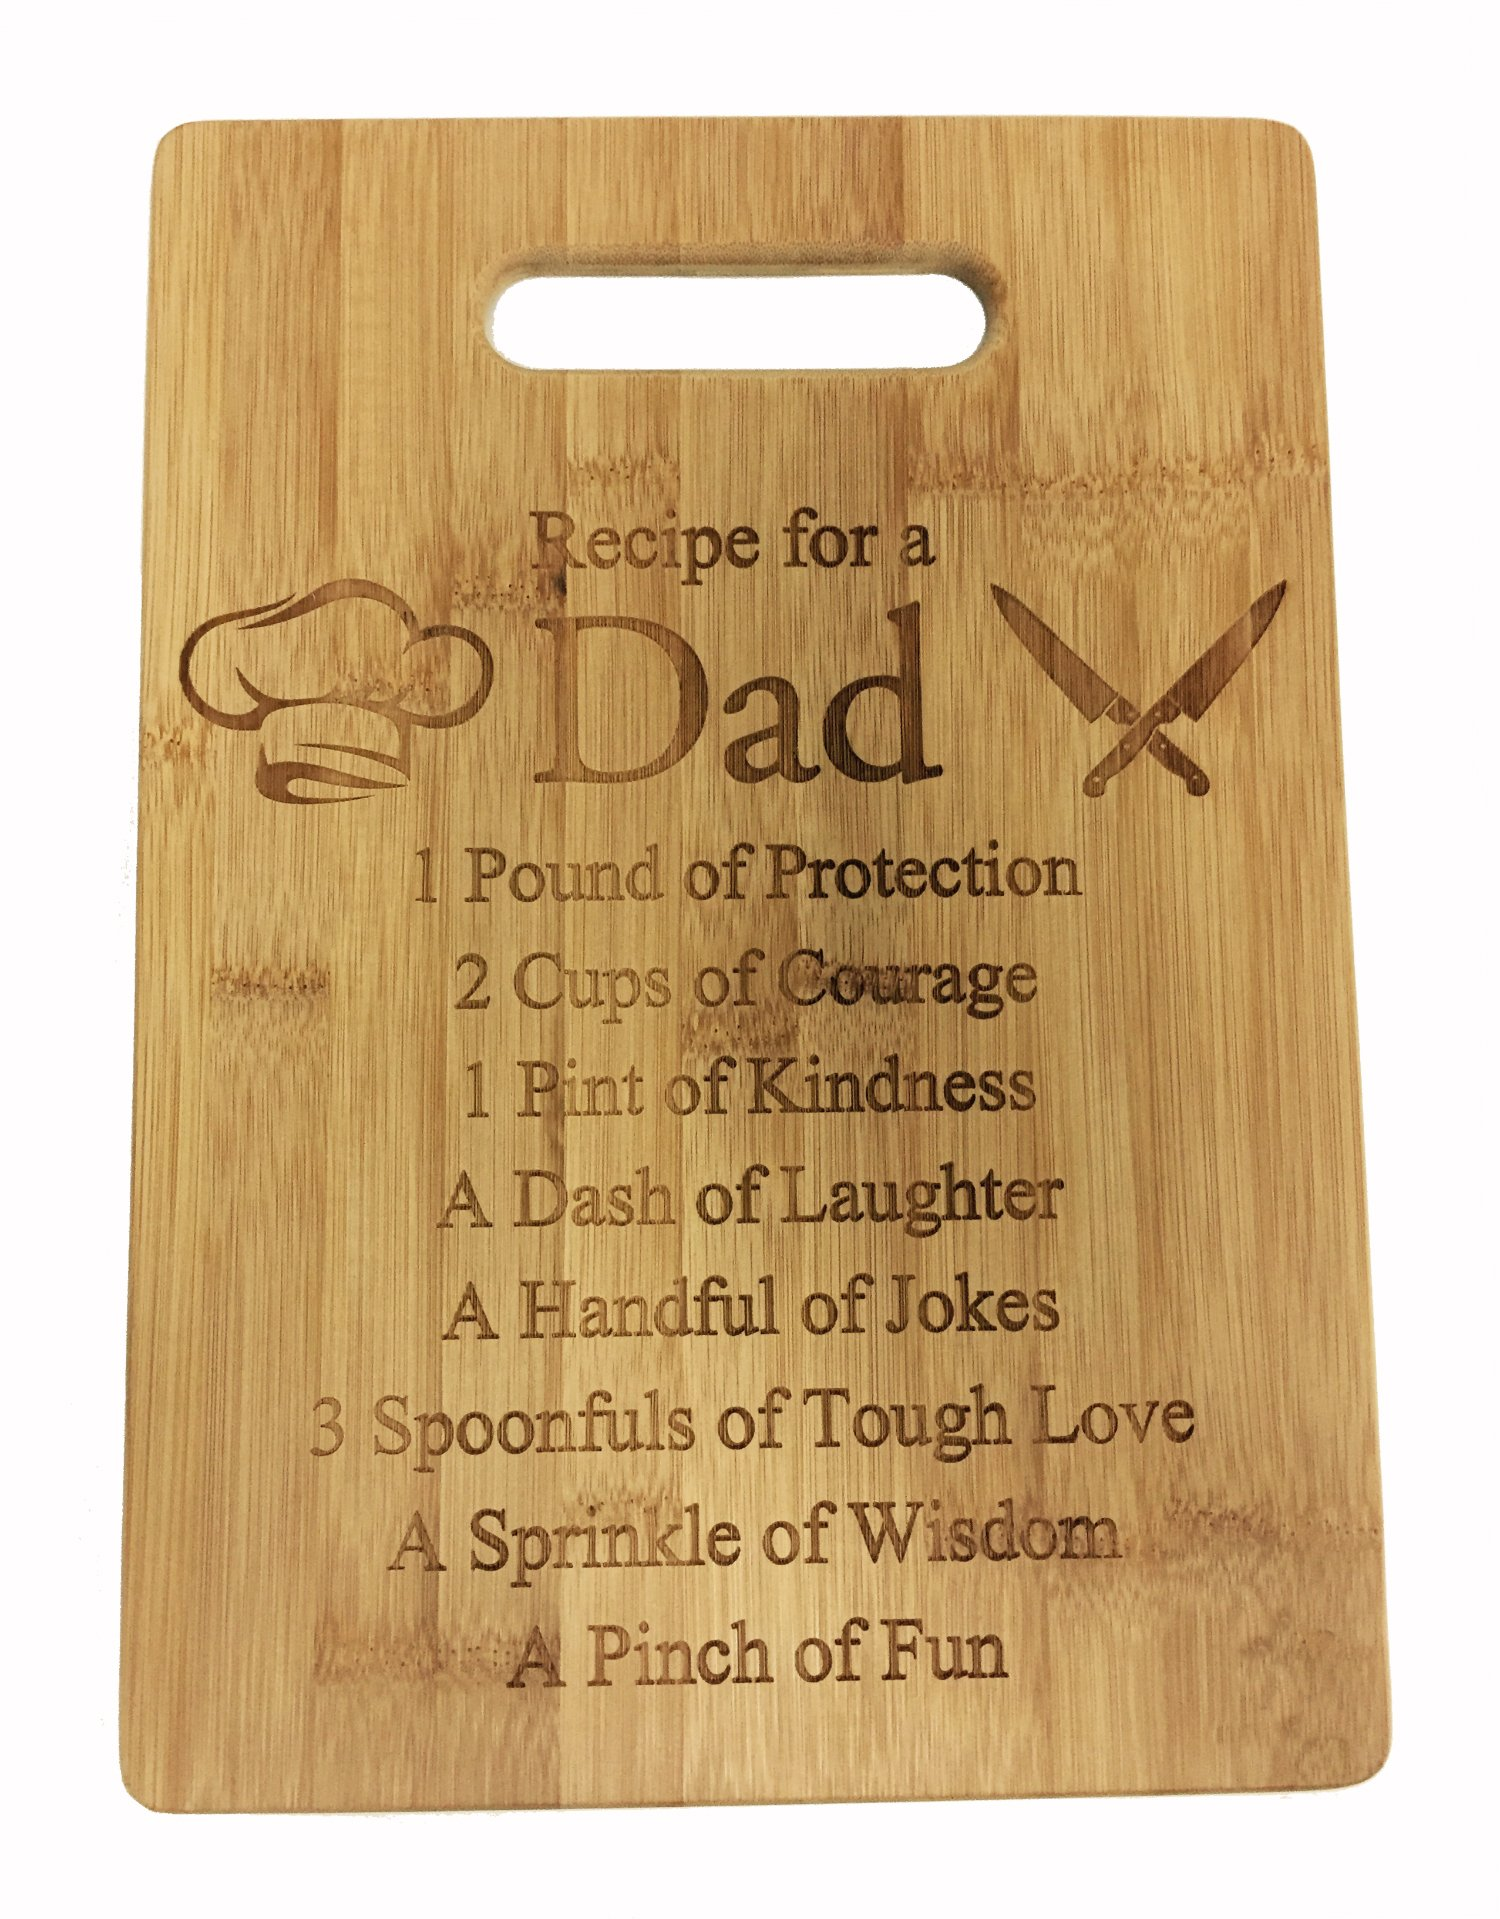 Recipe for a Dad Cute Funny Laser Engraved Bamboo Cutting Board - Wedding, Housewarming, Anniversary, Birthday, Father's Day, Gift For Him, For Her, For Boys, For Girls, For Husband, For Them